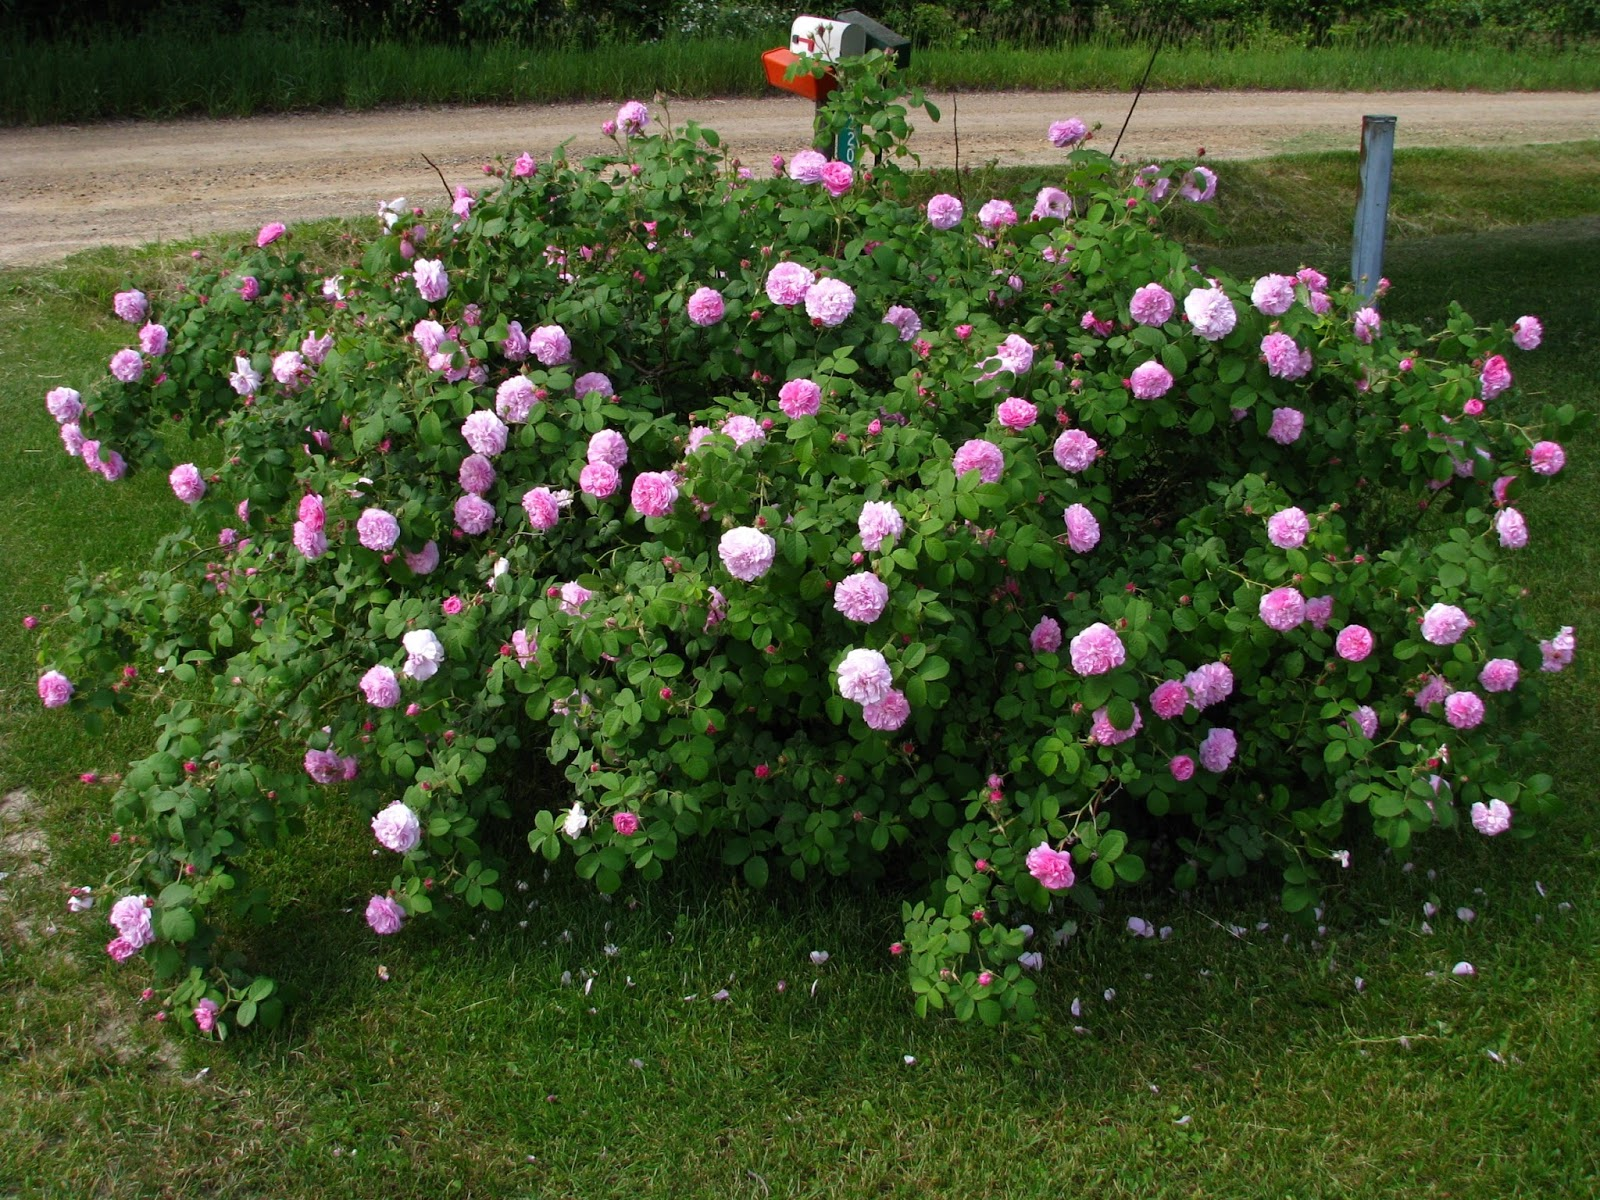 Wayside Treasures: Old wallpaper, roses and HIGH SPEED!!